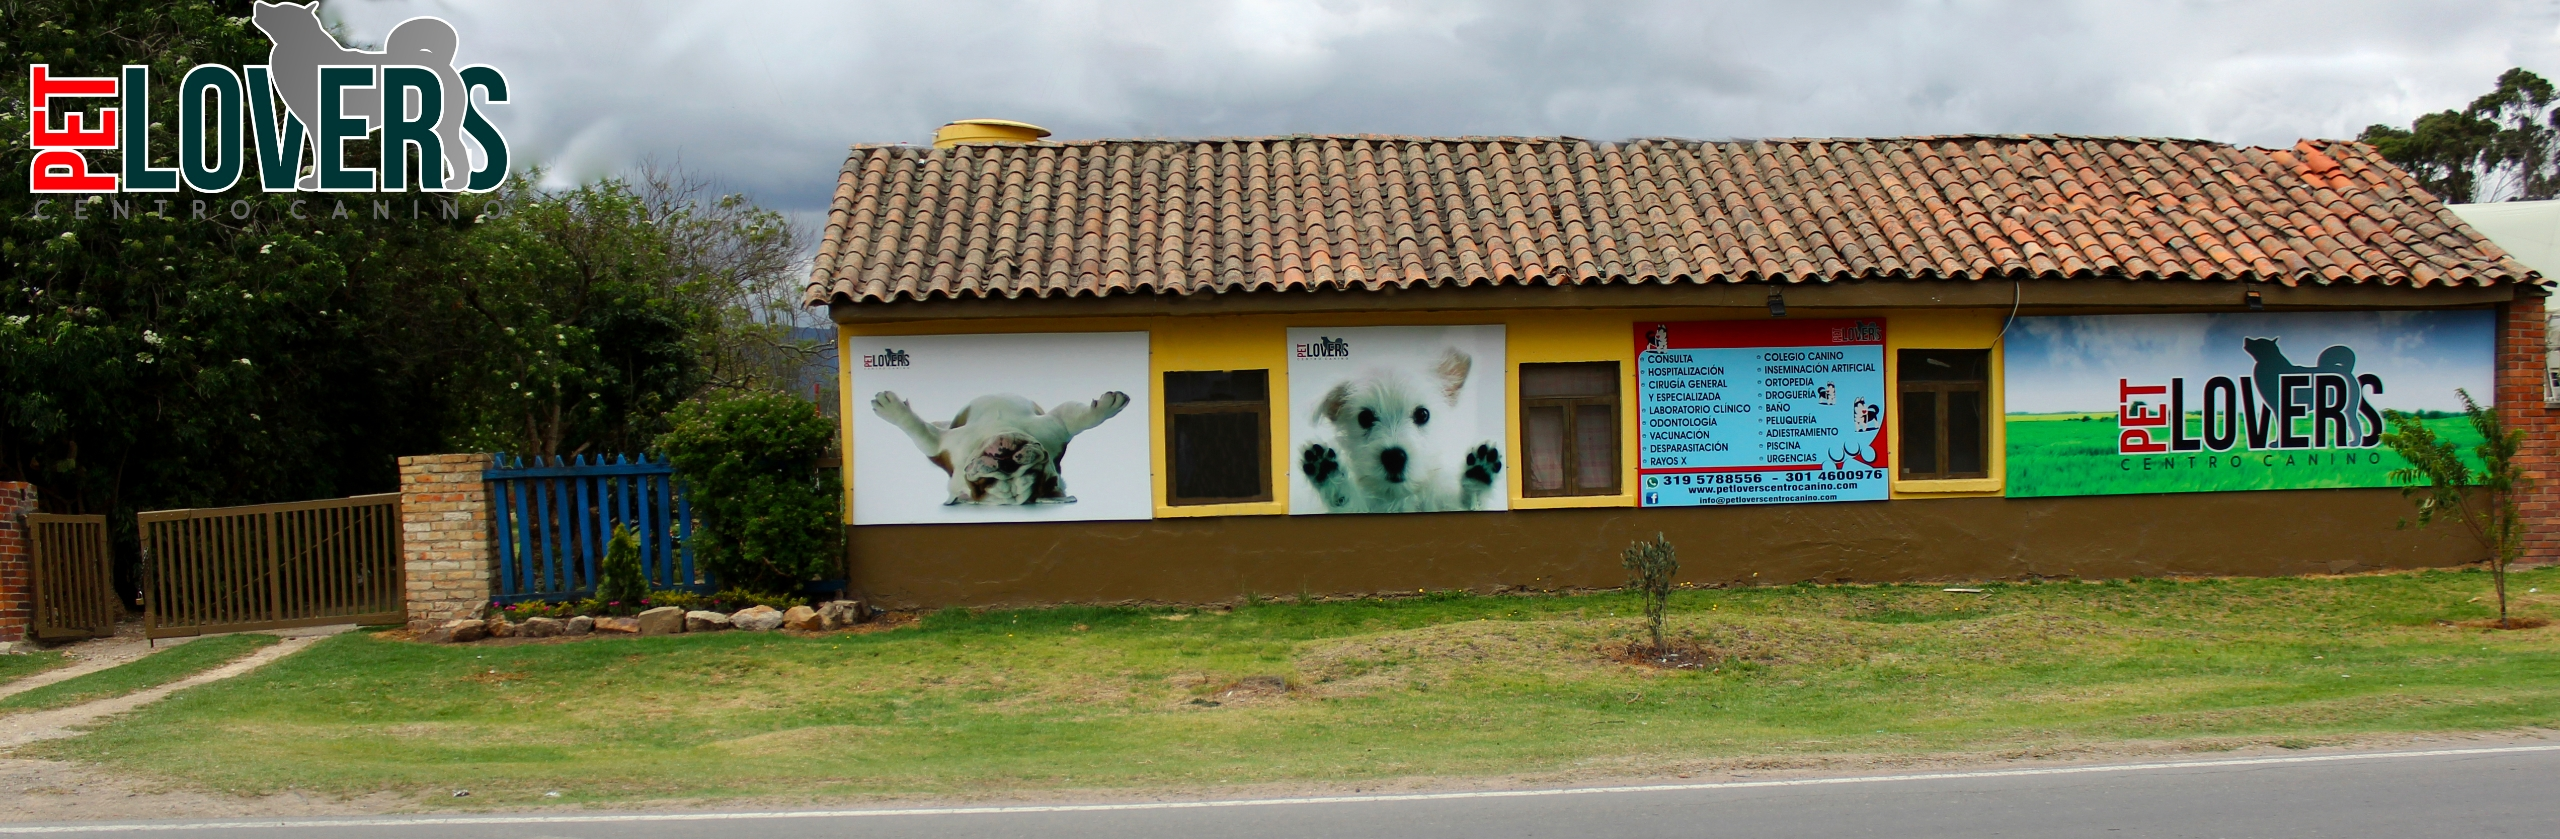 Pet Lovers Centro Canino (@petlovers) Cover Image